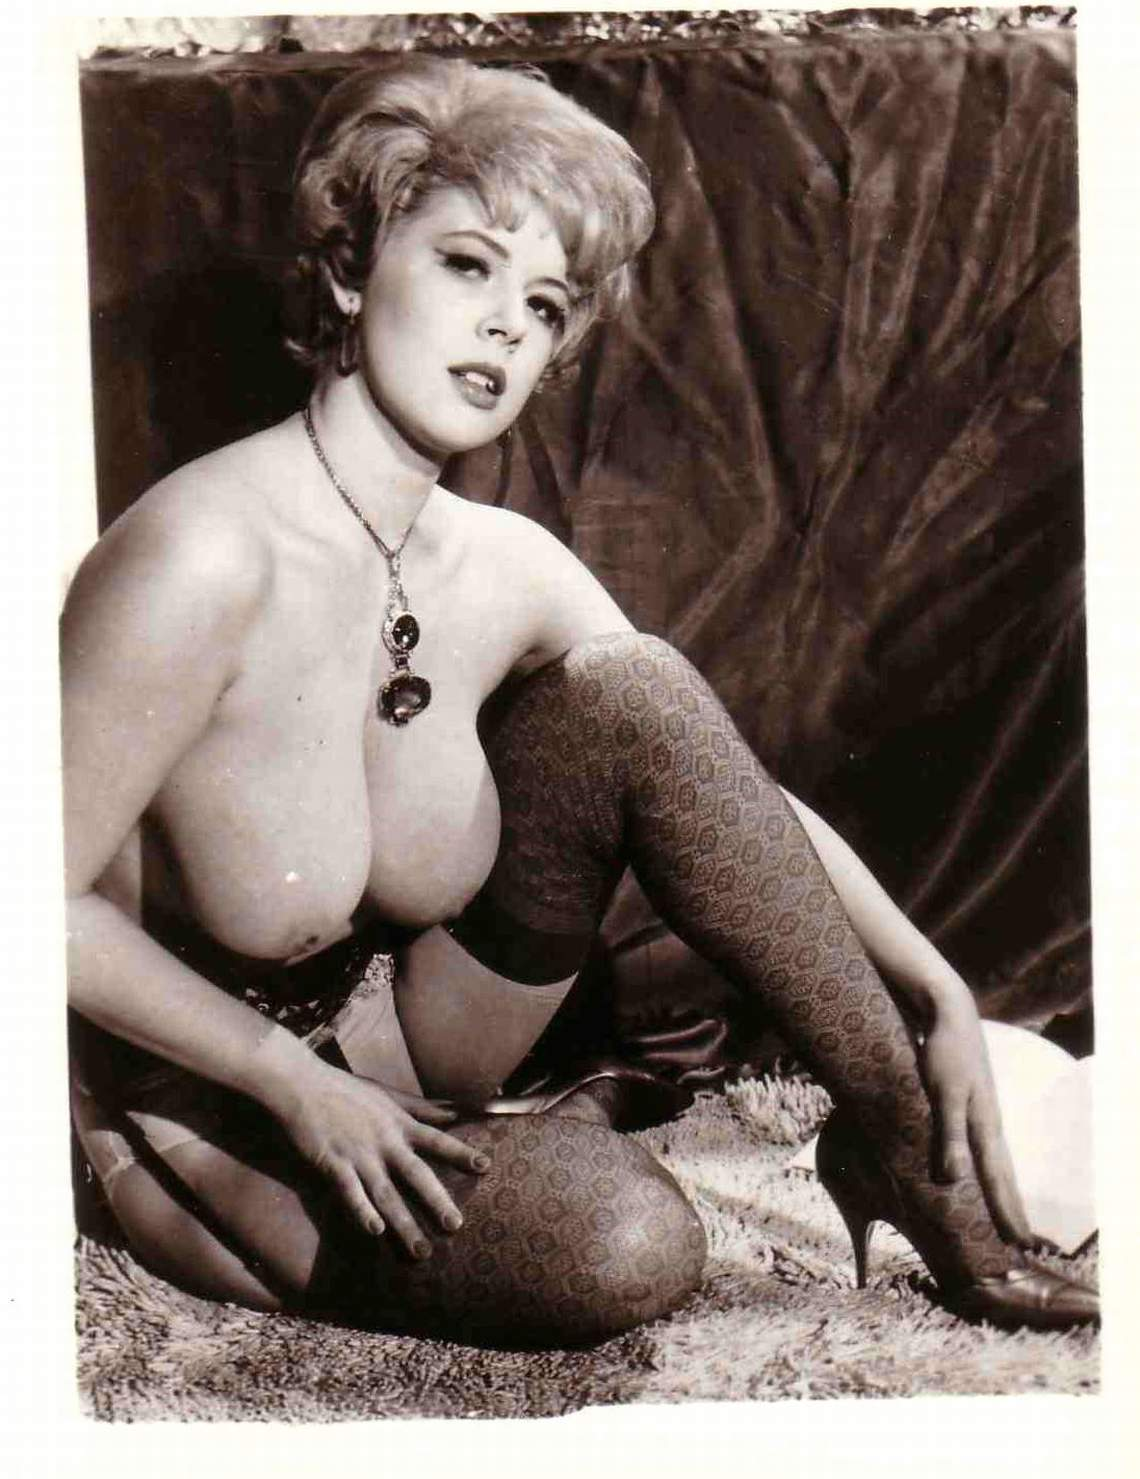 1950s Fat Lady Porn Stars - 70 s porn xxx - Porn retro vintage french porn antique gay porn jpg  1140x1479